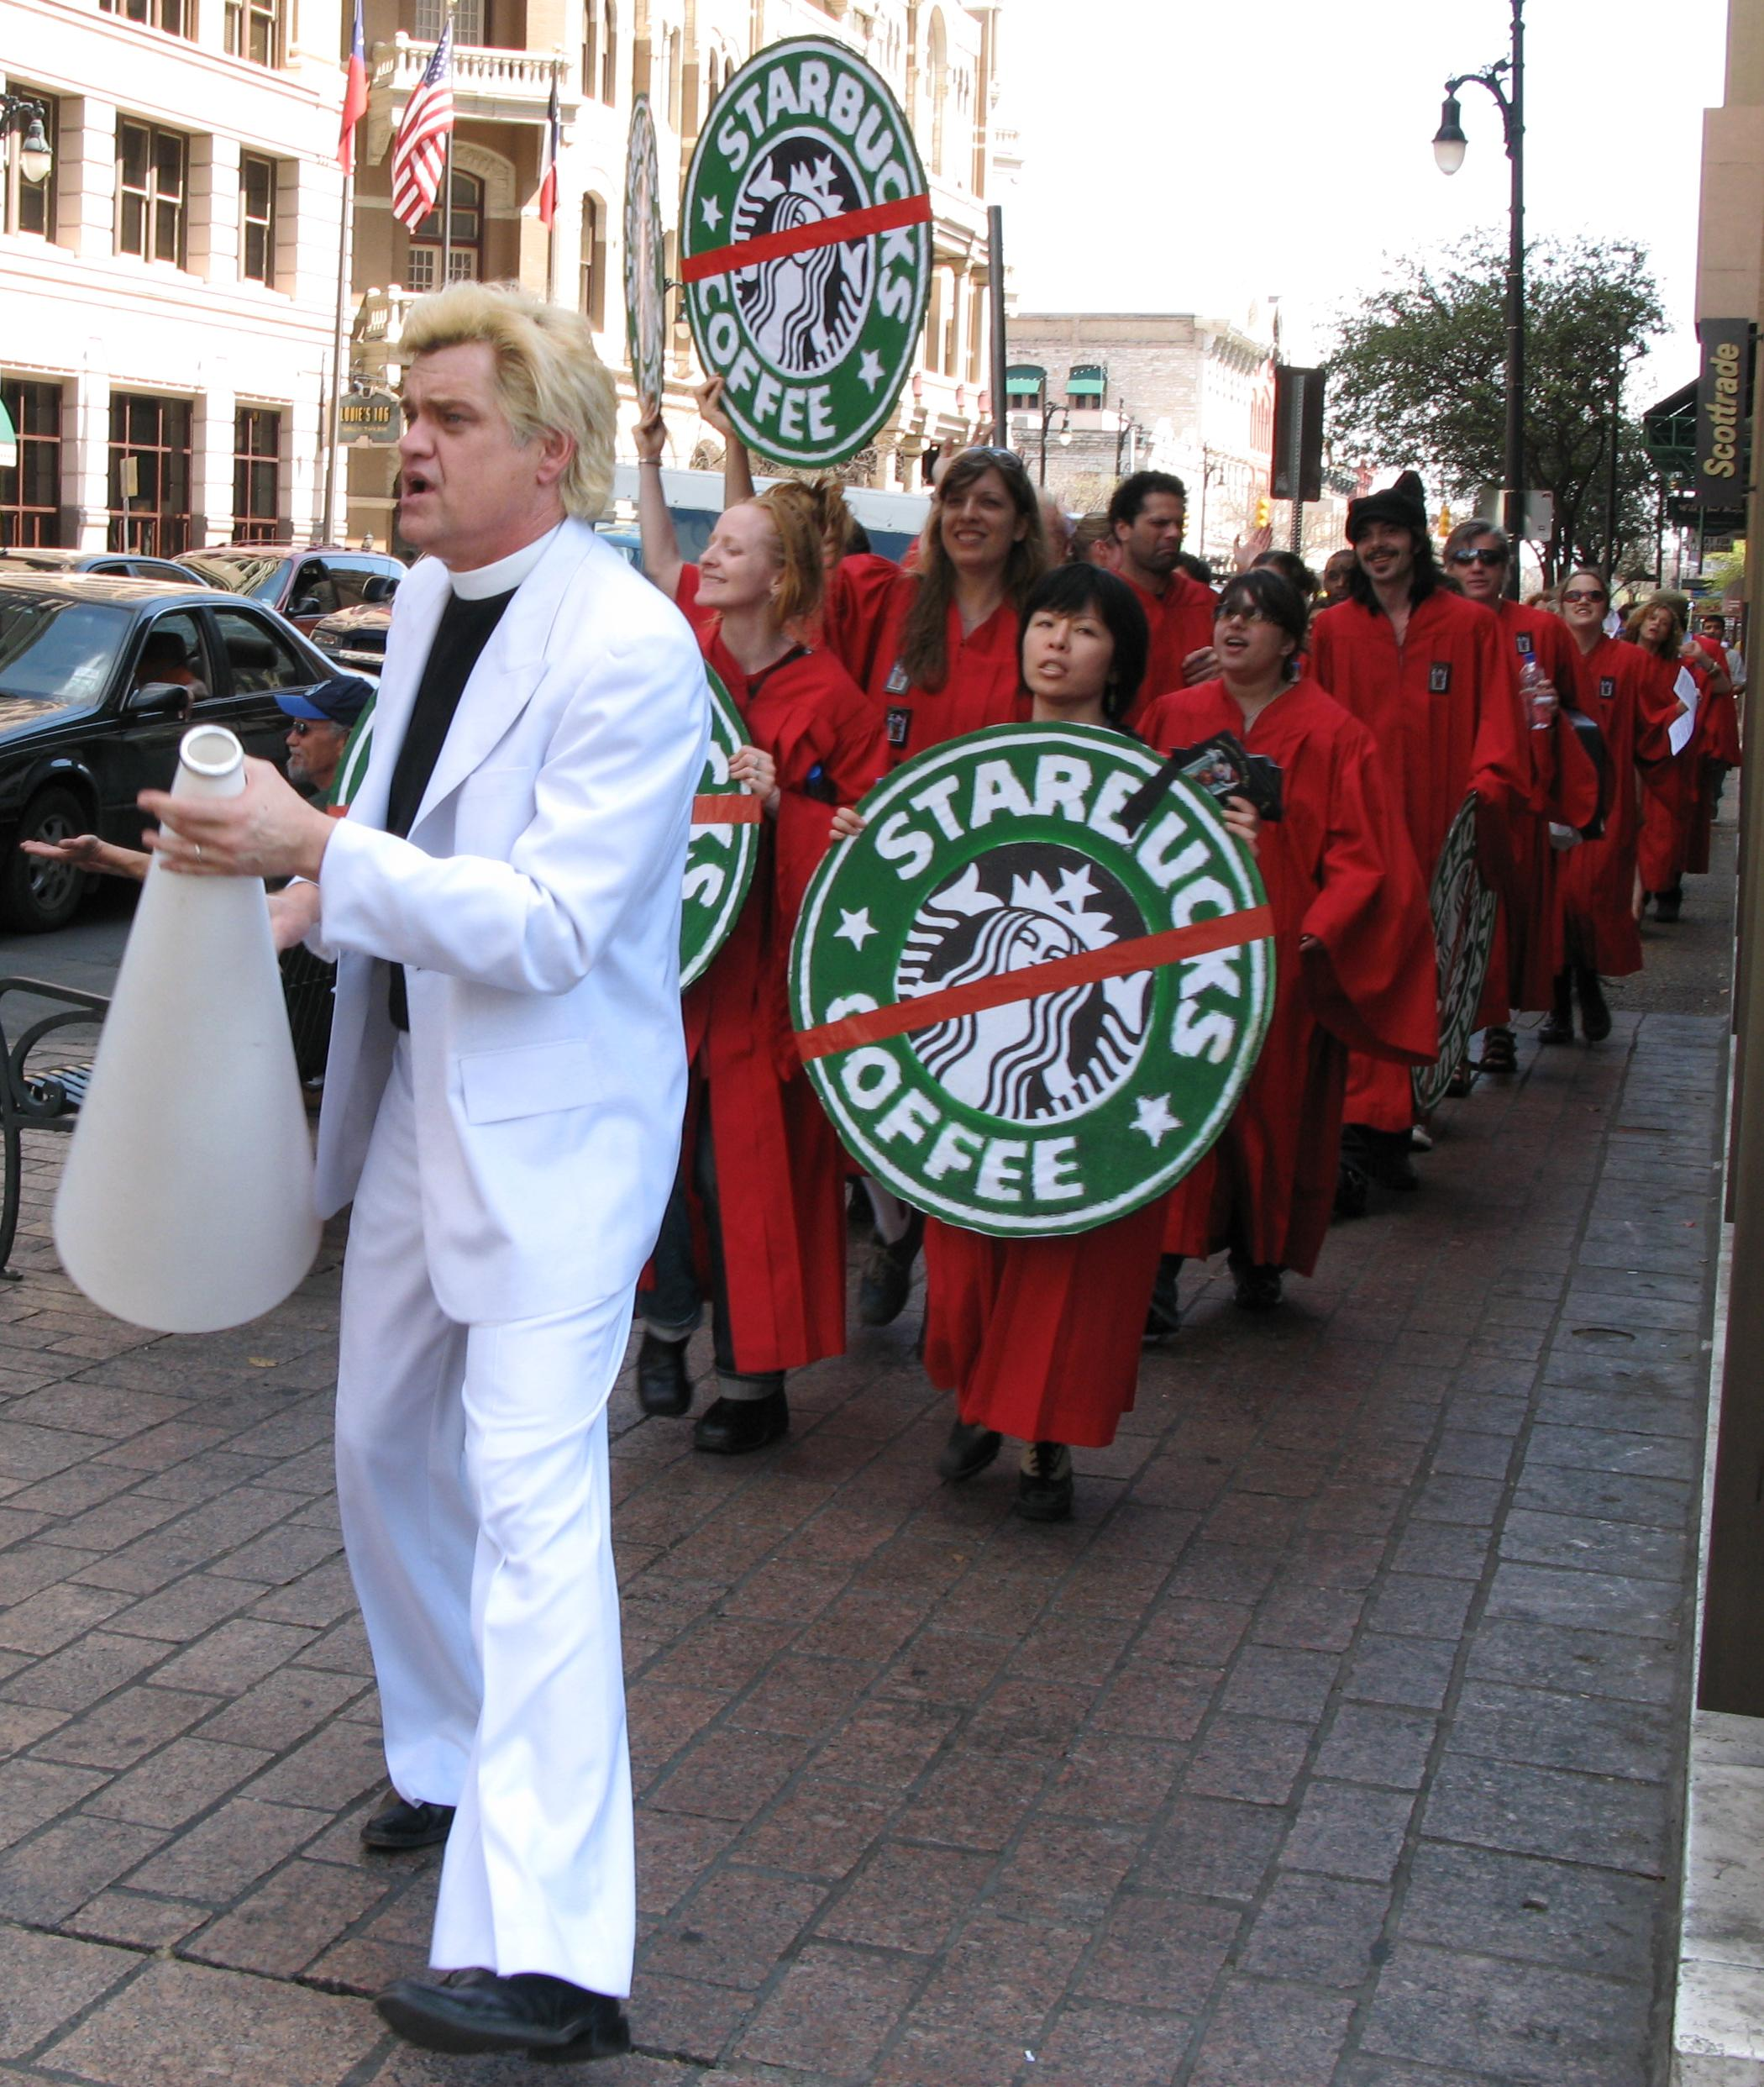 The Reverend Billy leading an anti-Starbucks protest in Austin, Texas in 2007